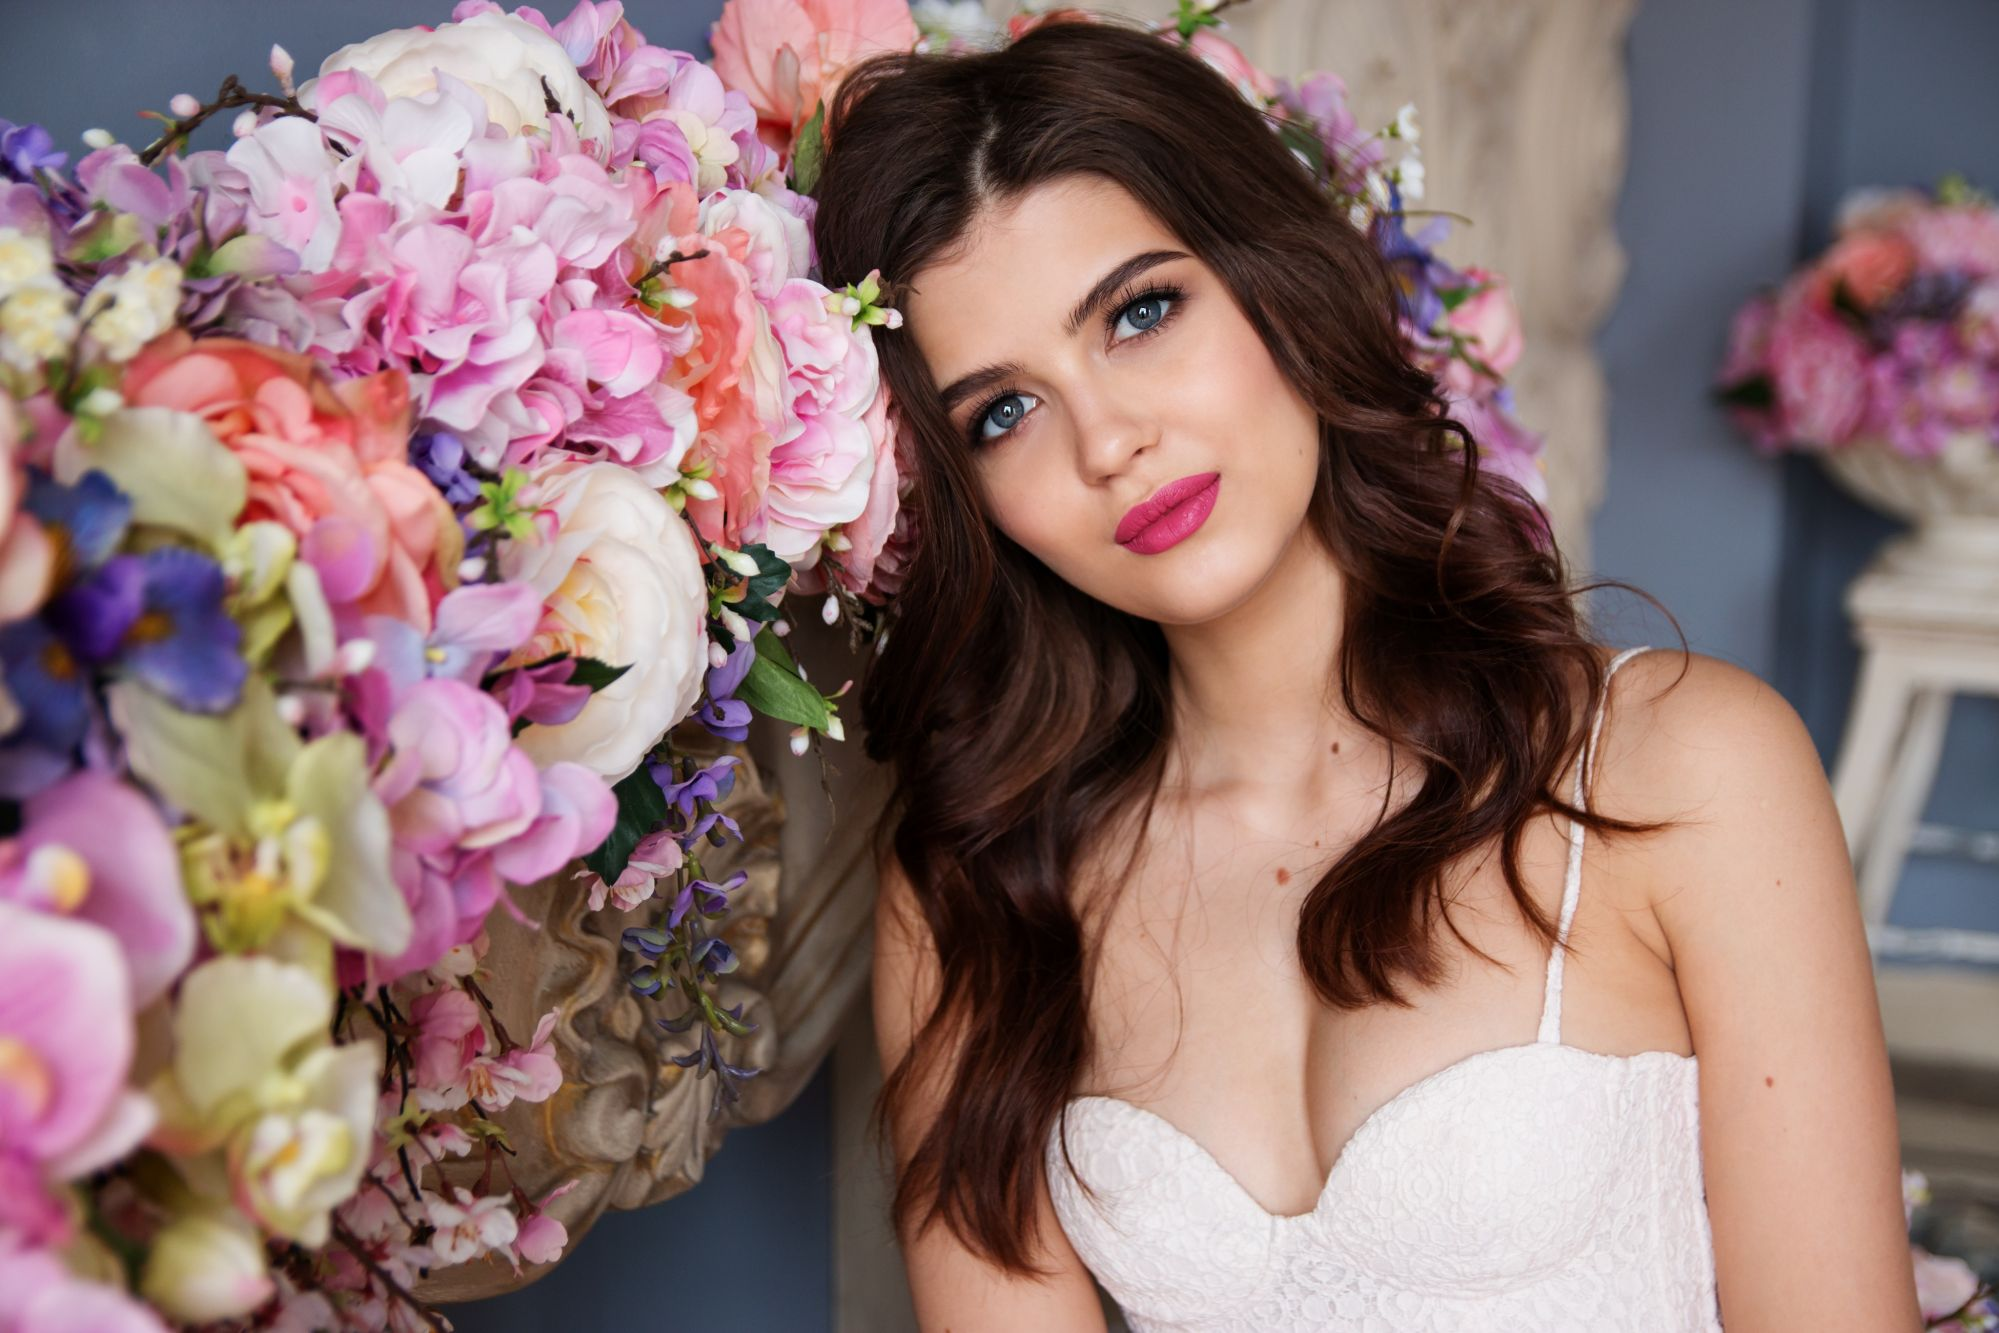 13 Beauty Essentials To Look And Feel Flawless On Your Wedding Day